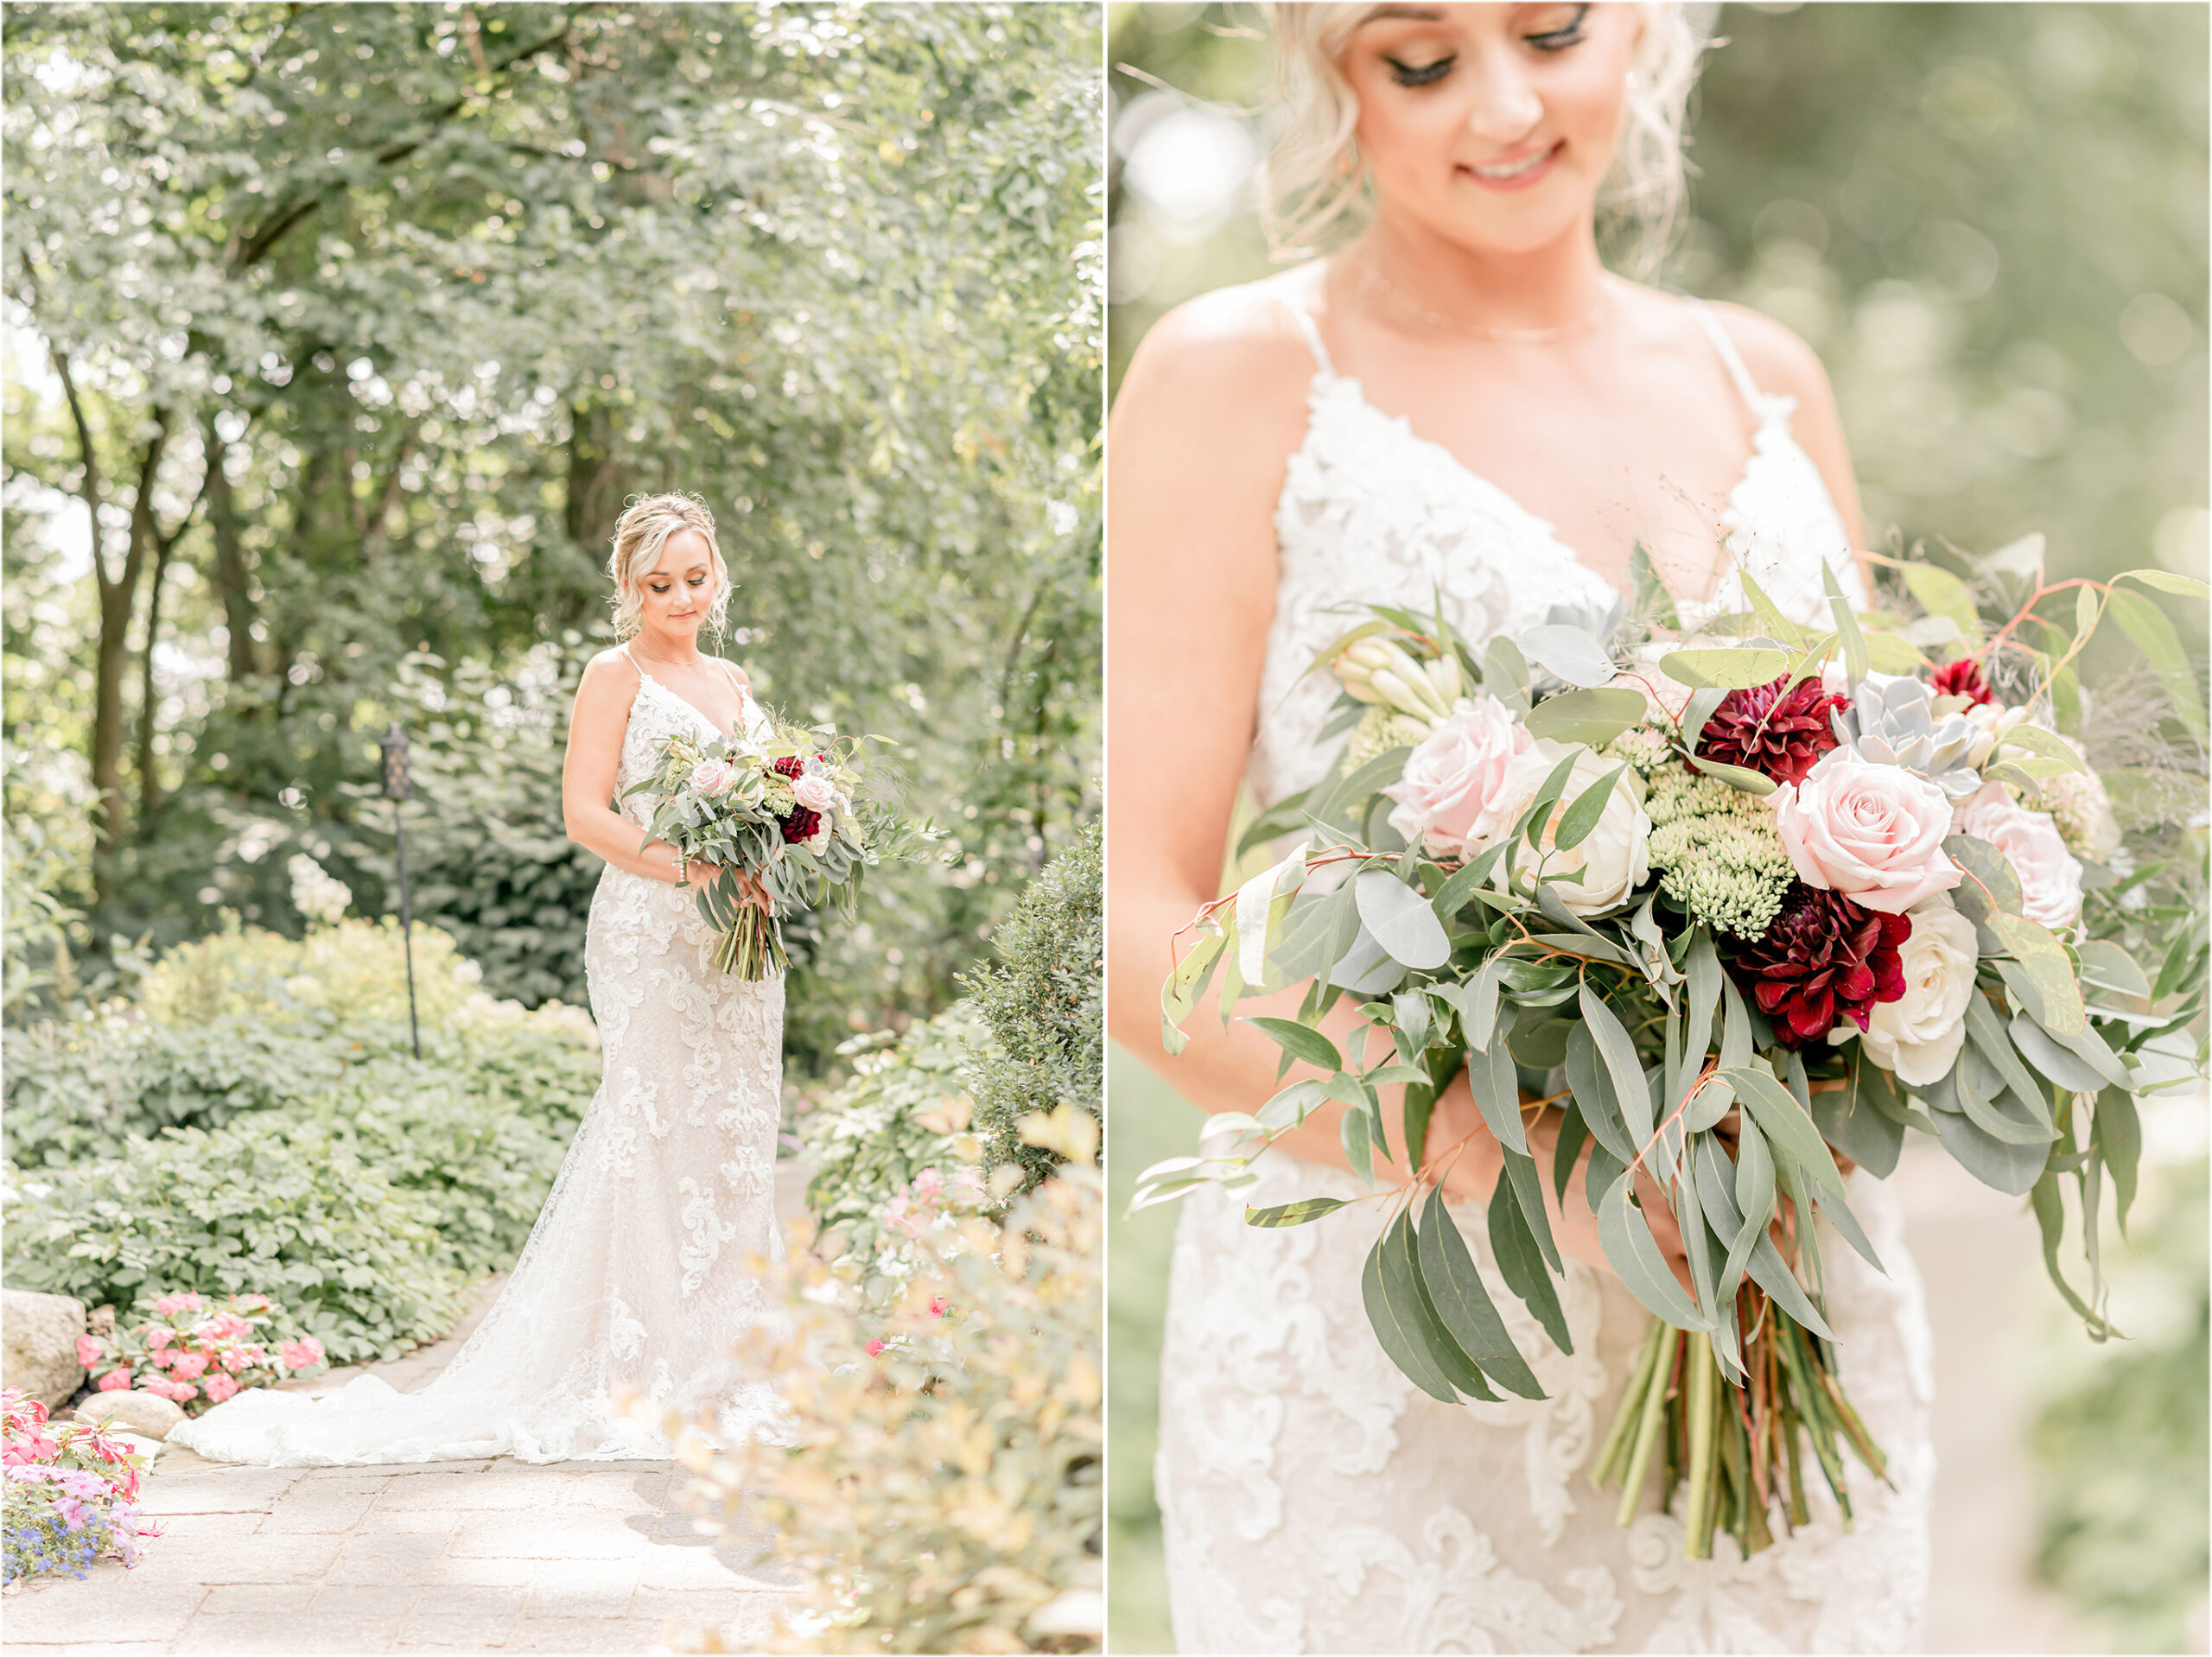 Lindsay-Adkins-Photography-Top10BridalBouquets2019-7